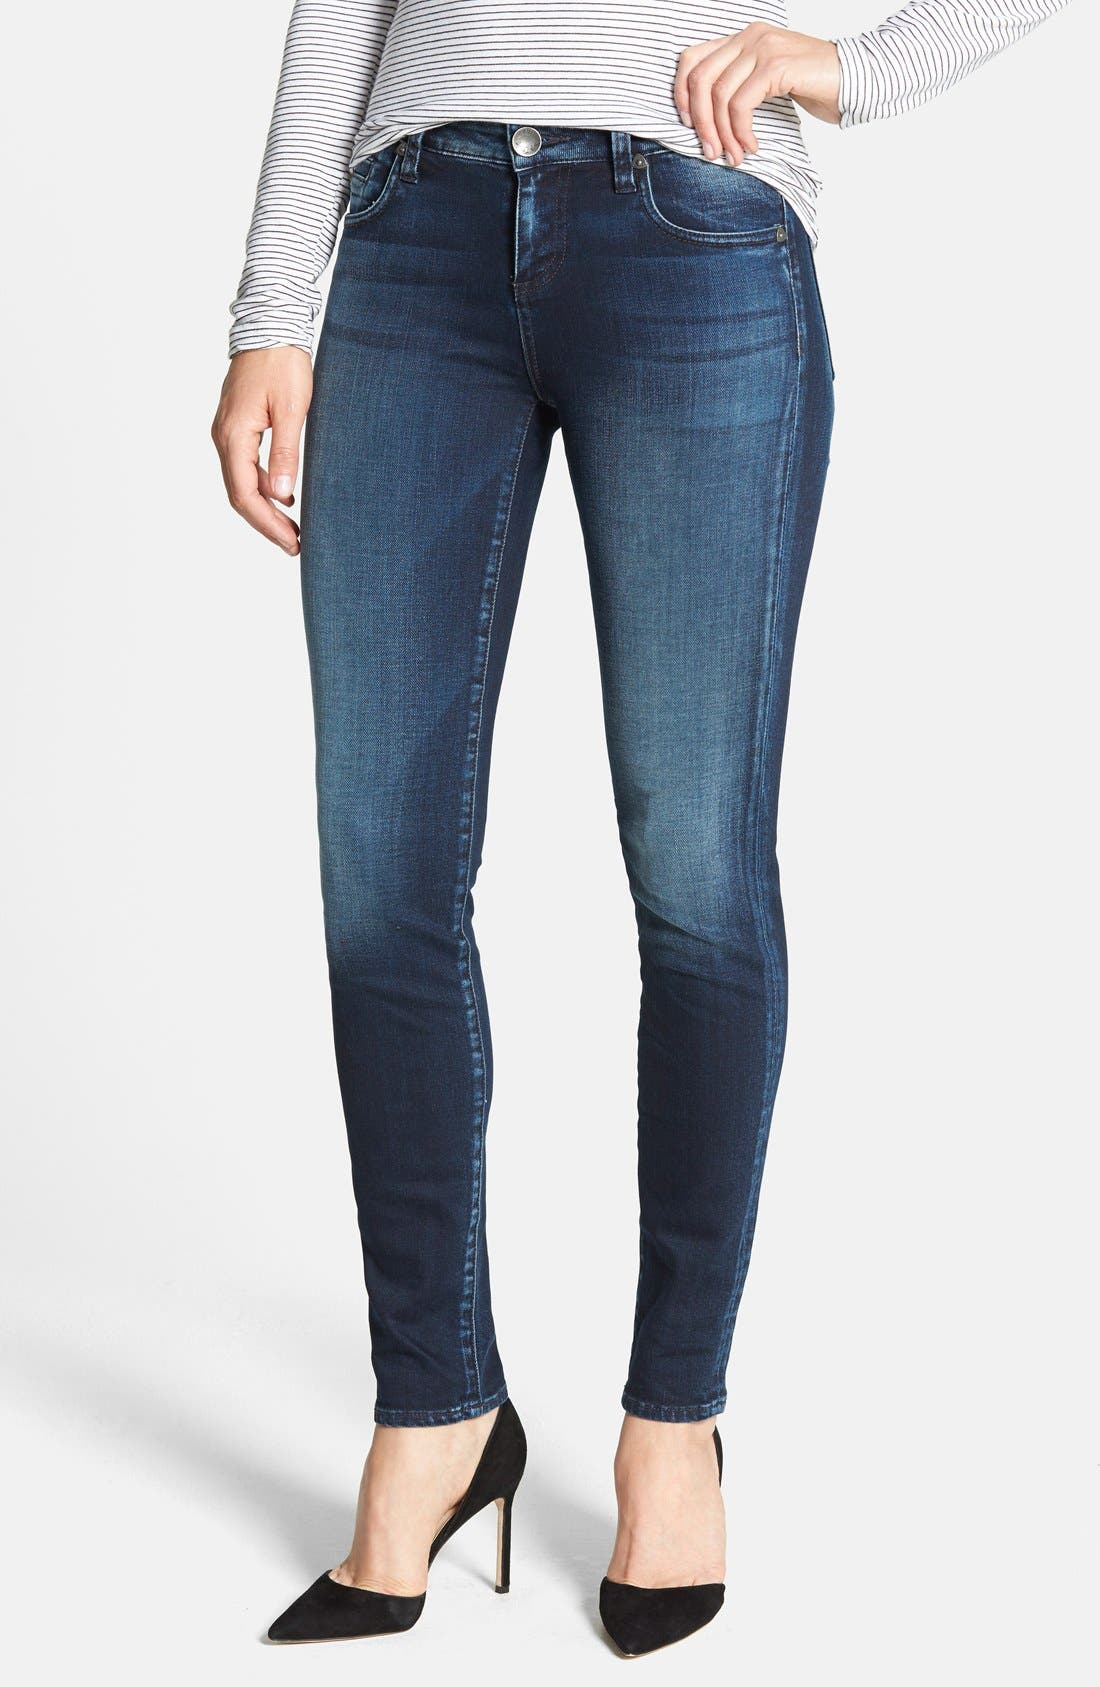 Alternate Image 1 Selected - KUT from the Kloth 'Diana' Skinny Jeans (Breezy)